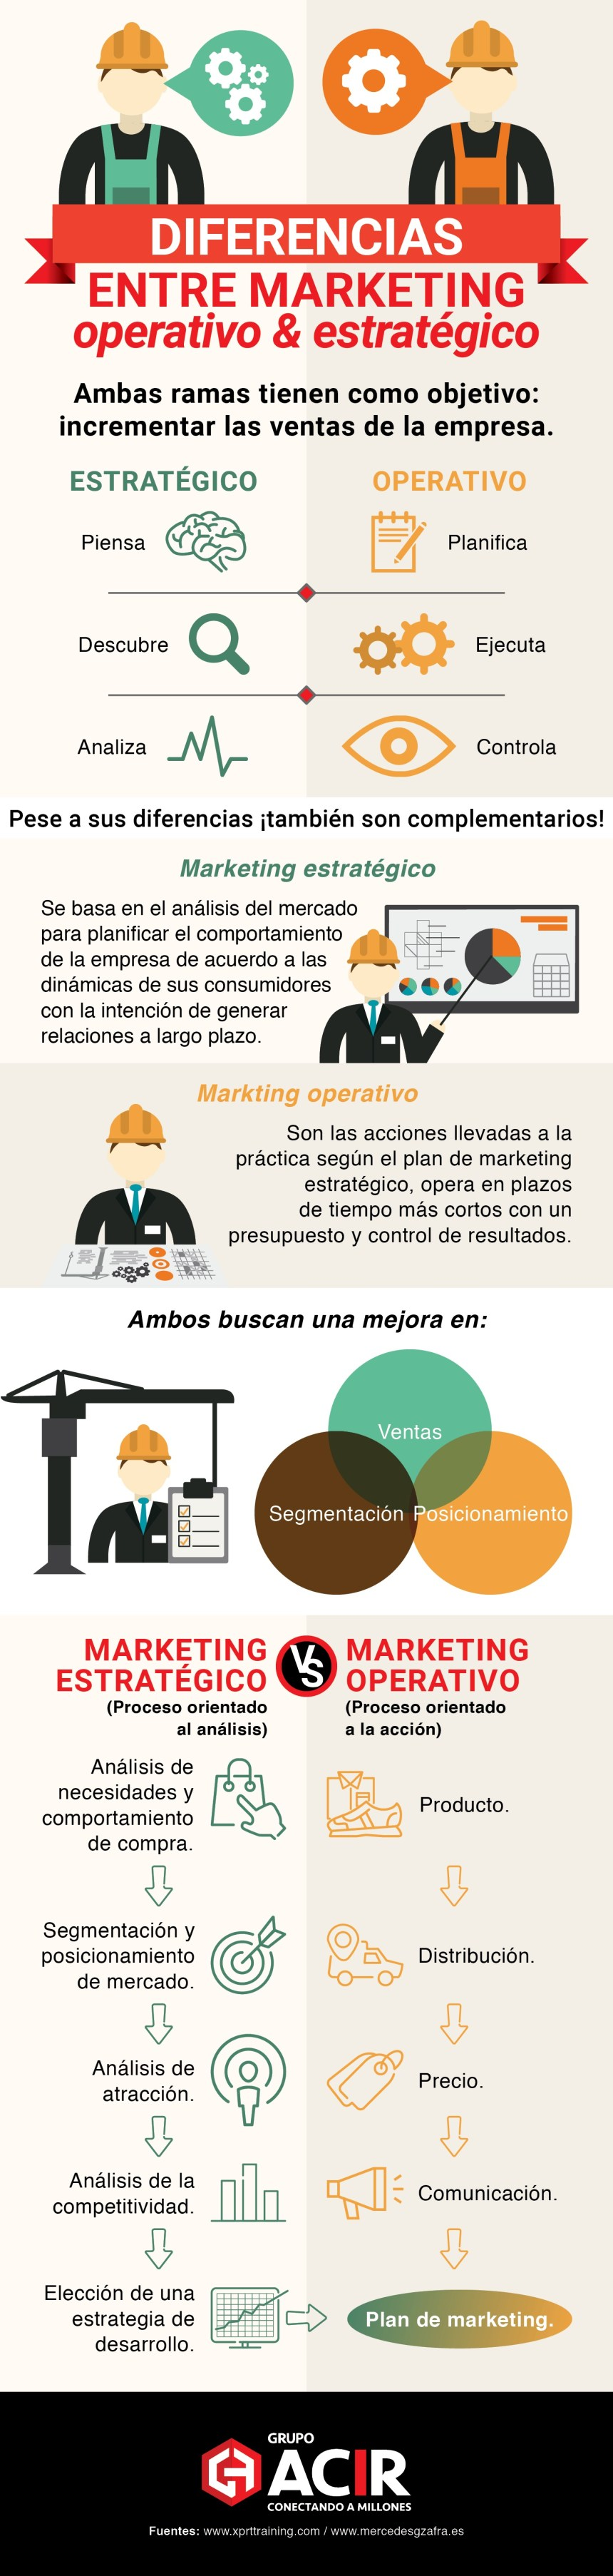 Diferencias entre marketing operativo y estratégico